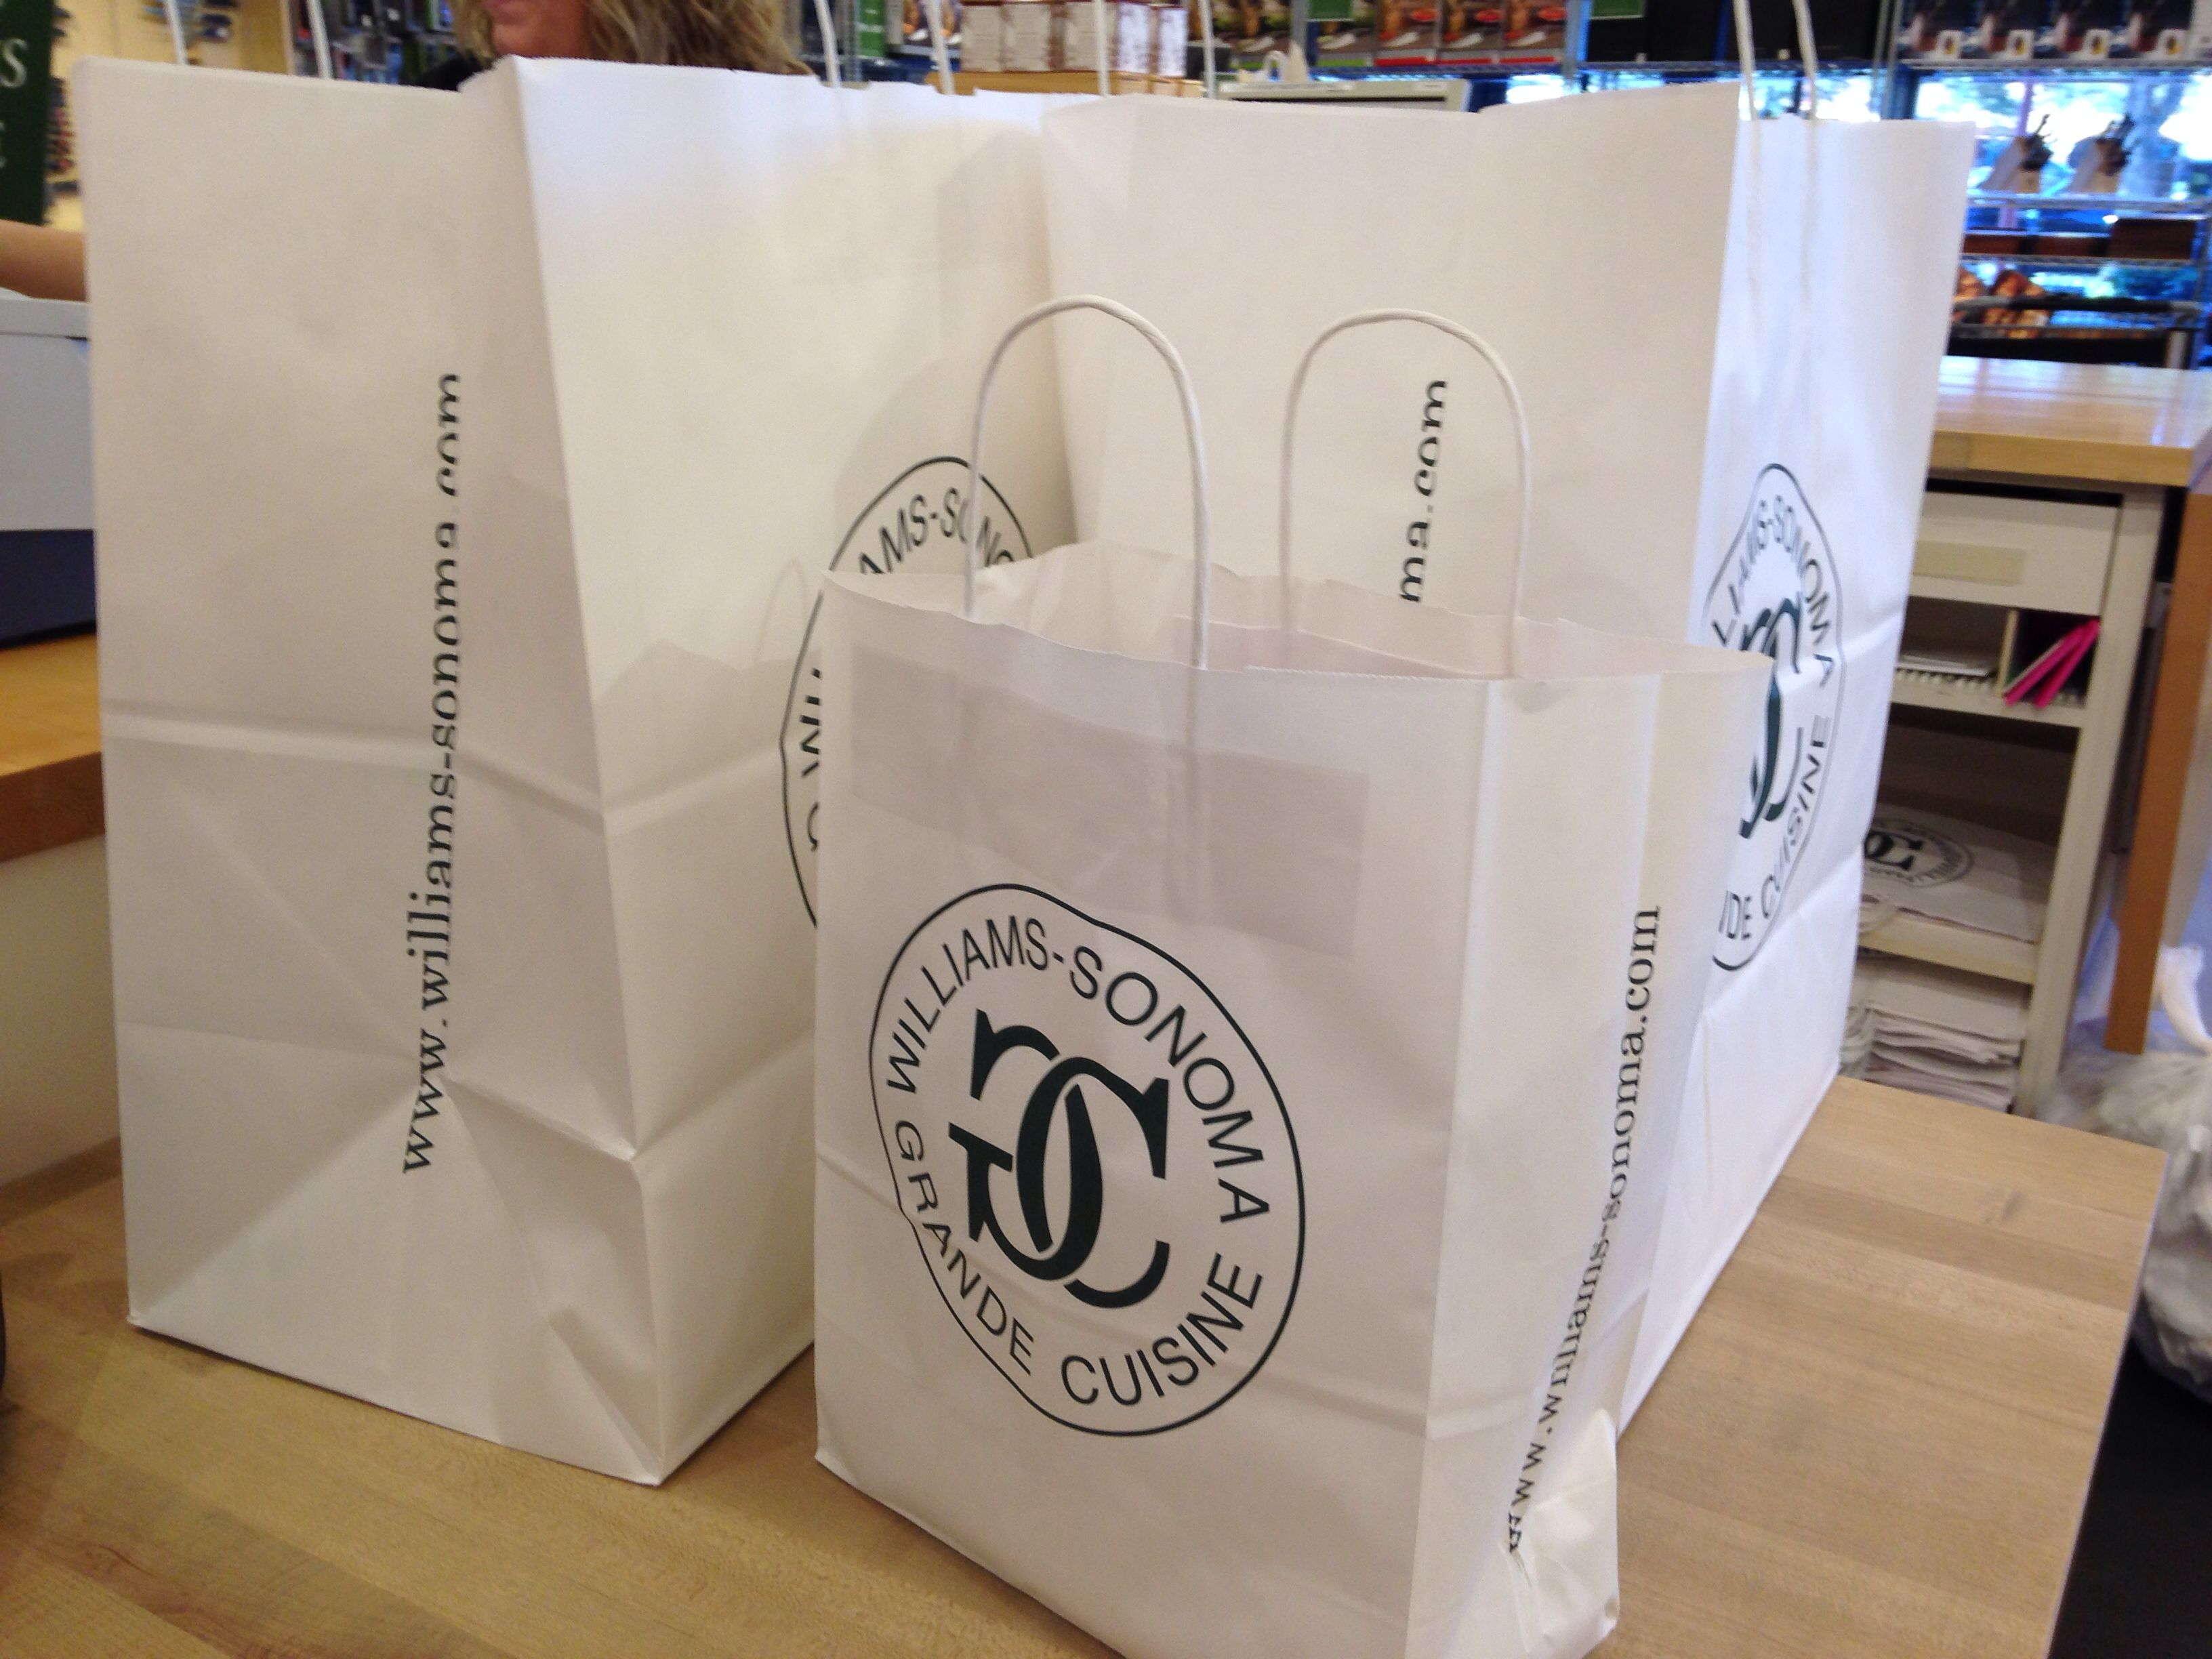 And 50 later at the williams sonoma outlet i take home